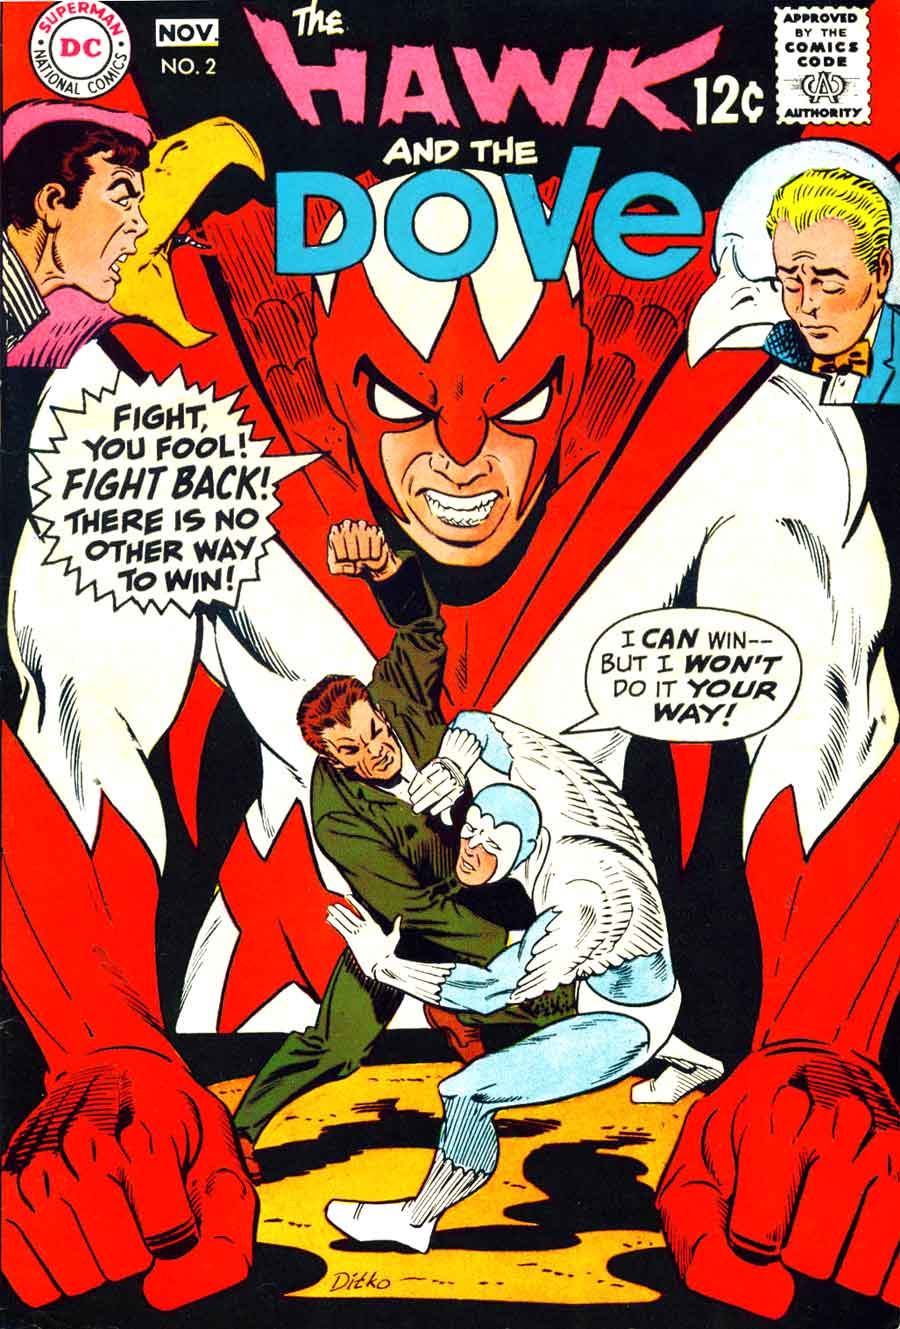 Hawk and the Dove v1 #2 dc comic book cover art by Steve Ditko